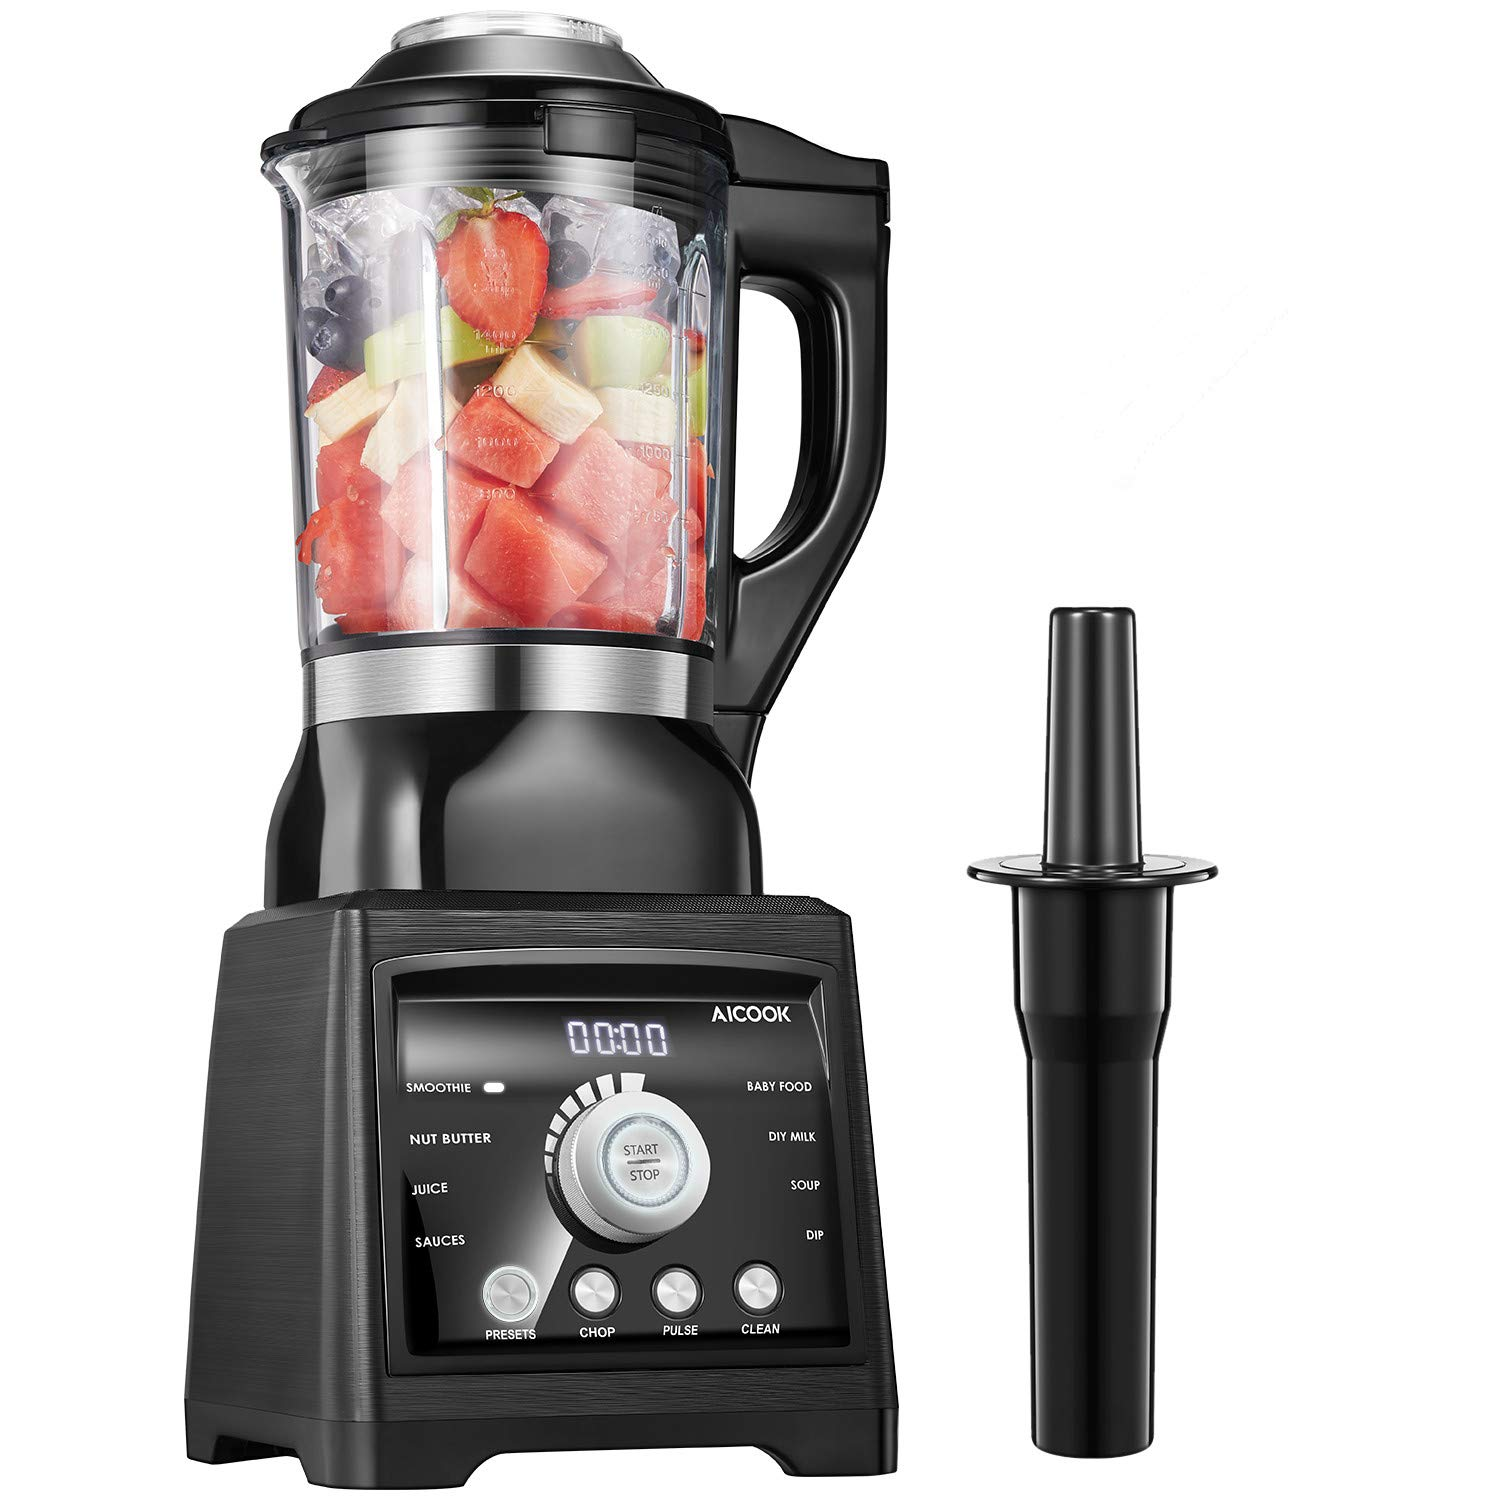 Smoothie Blender Aicook 1400W Professional Heating Blender with 60oz Glass Pitcher, Multifunctional Countertop Blender with 8 Programs and 7 Variable Speed for Smoothies, Ice, Frozen Fruit and Soup